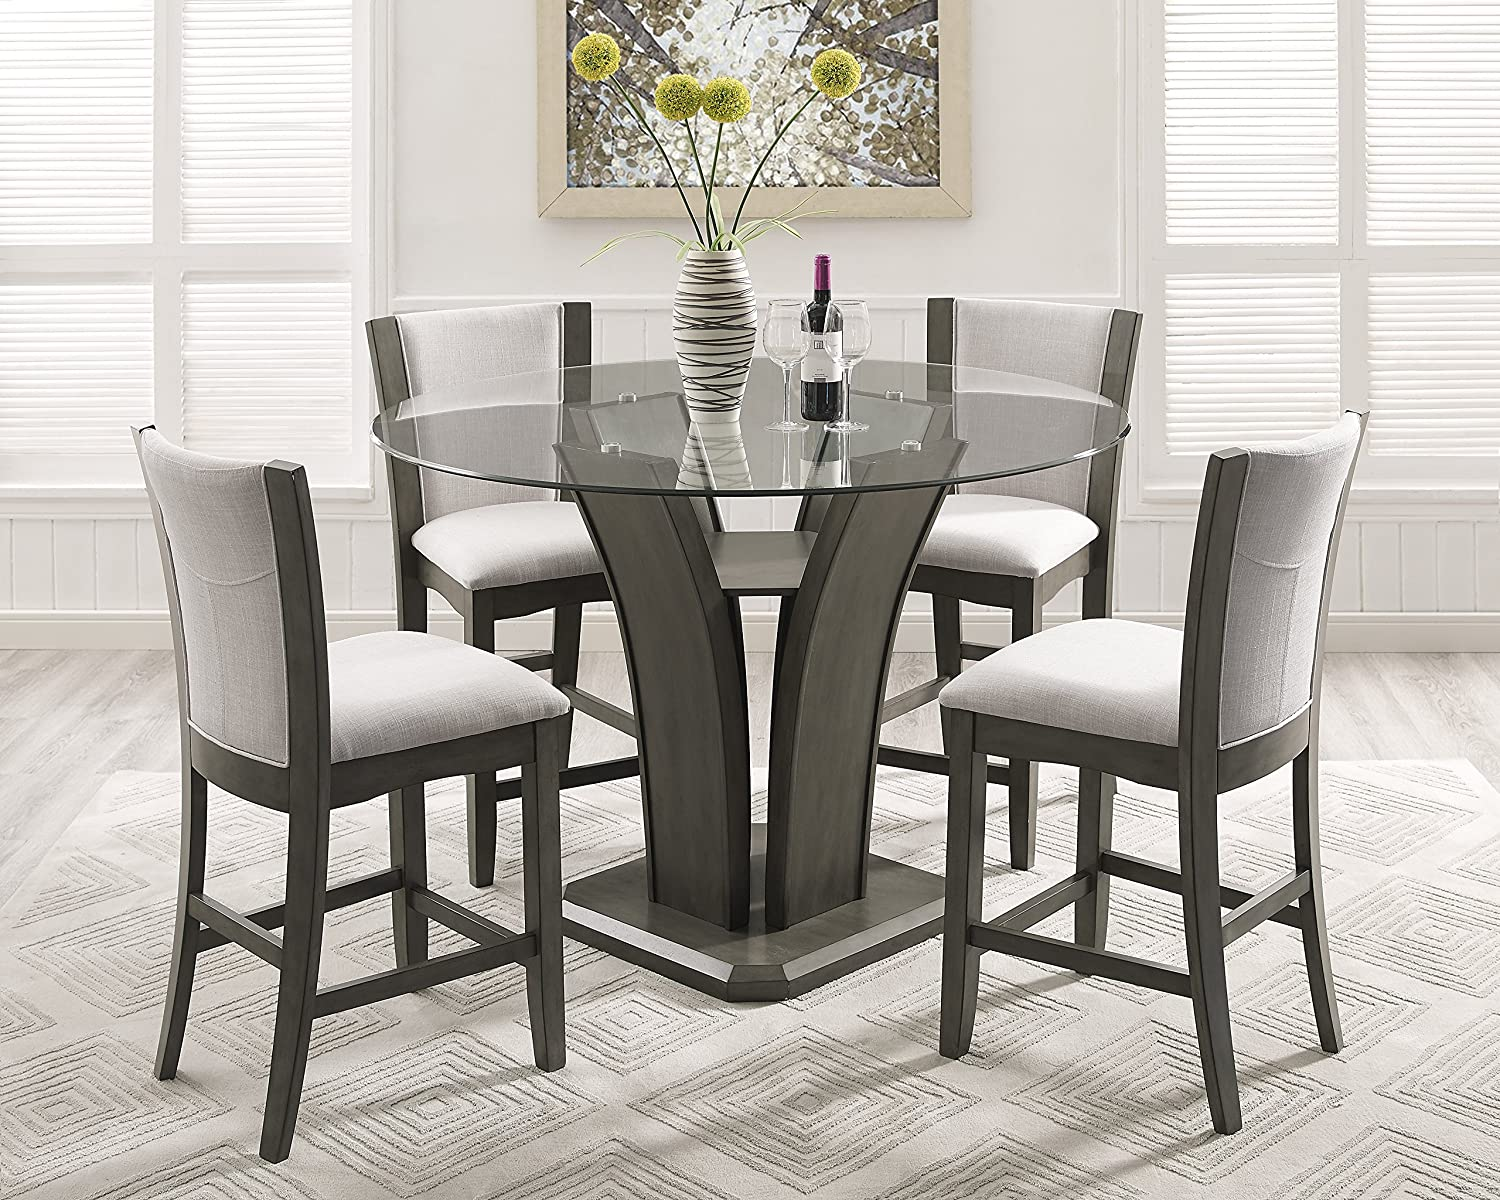 Roundhill Furniture Kecco Gray 5-Piece Round Glass Top Counter Height  Dining Set